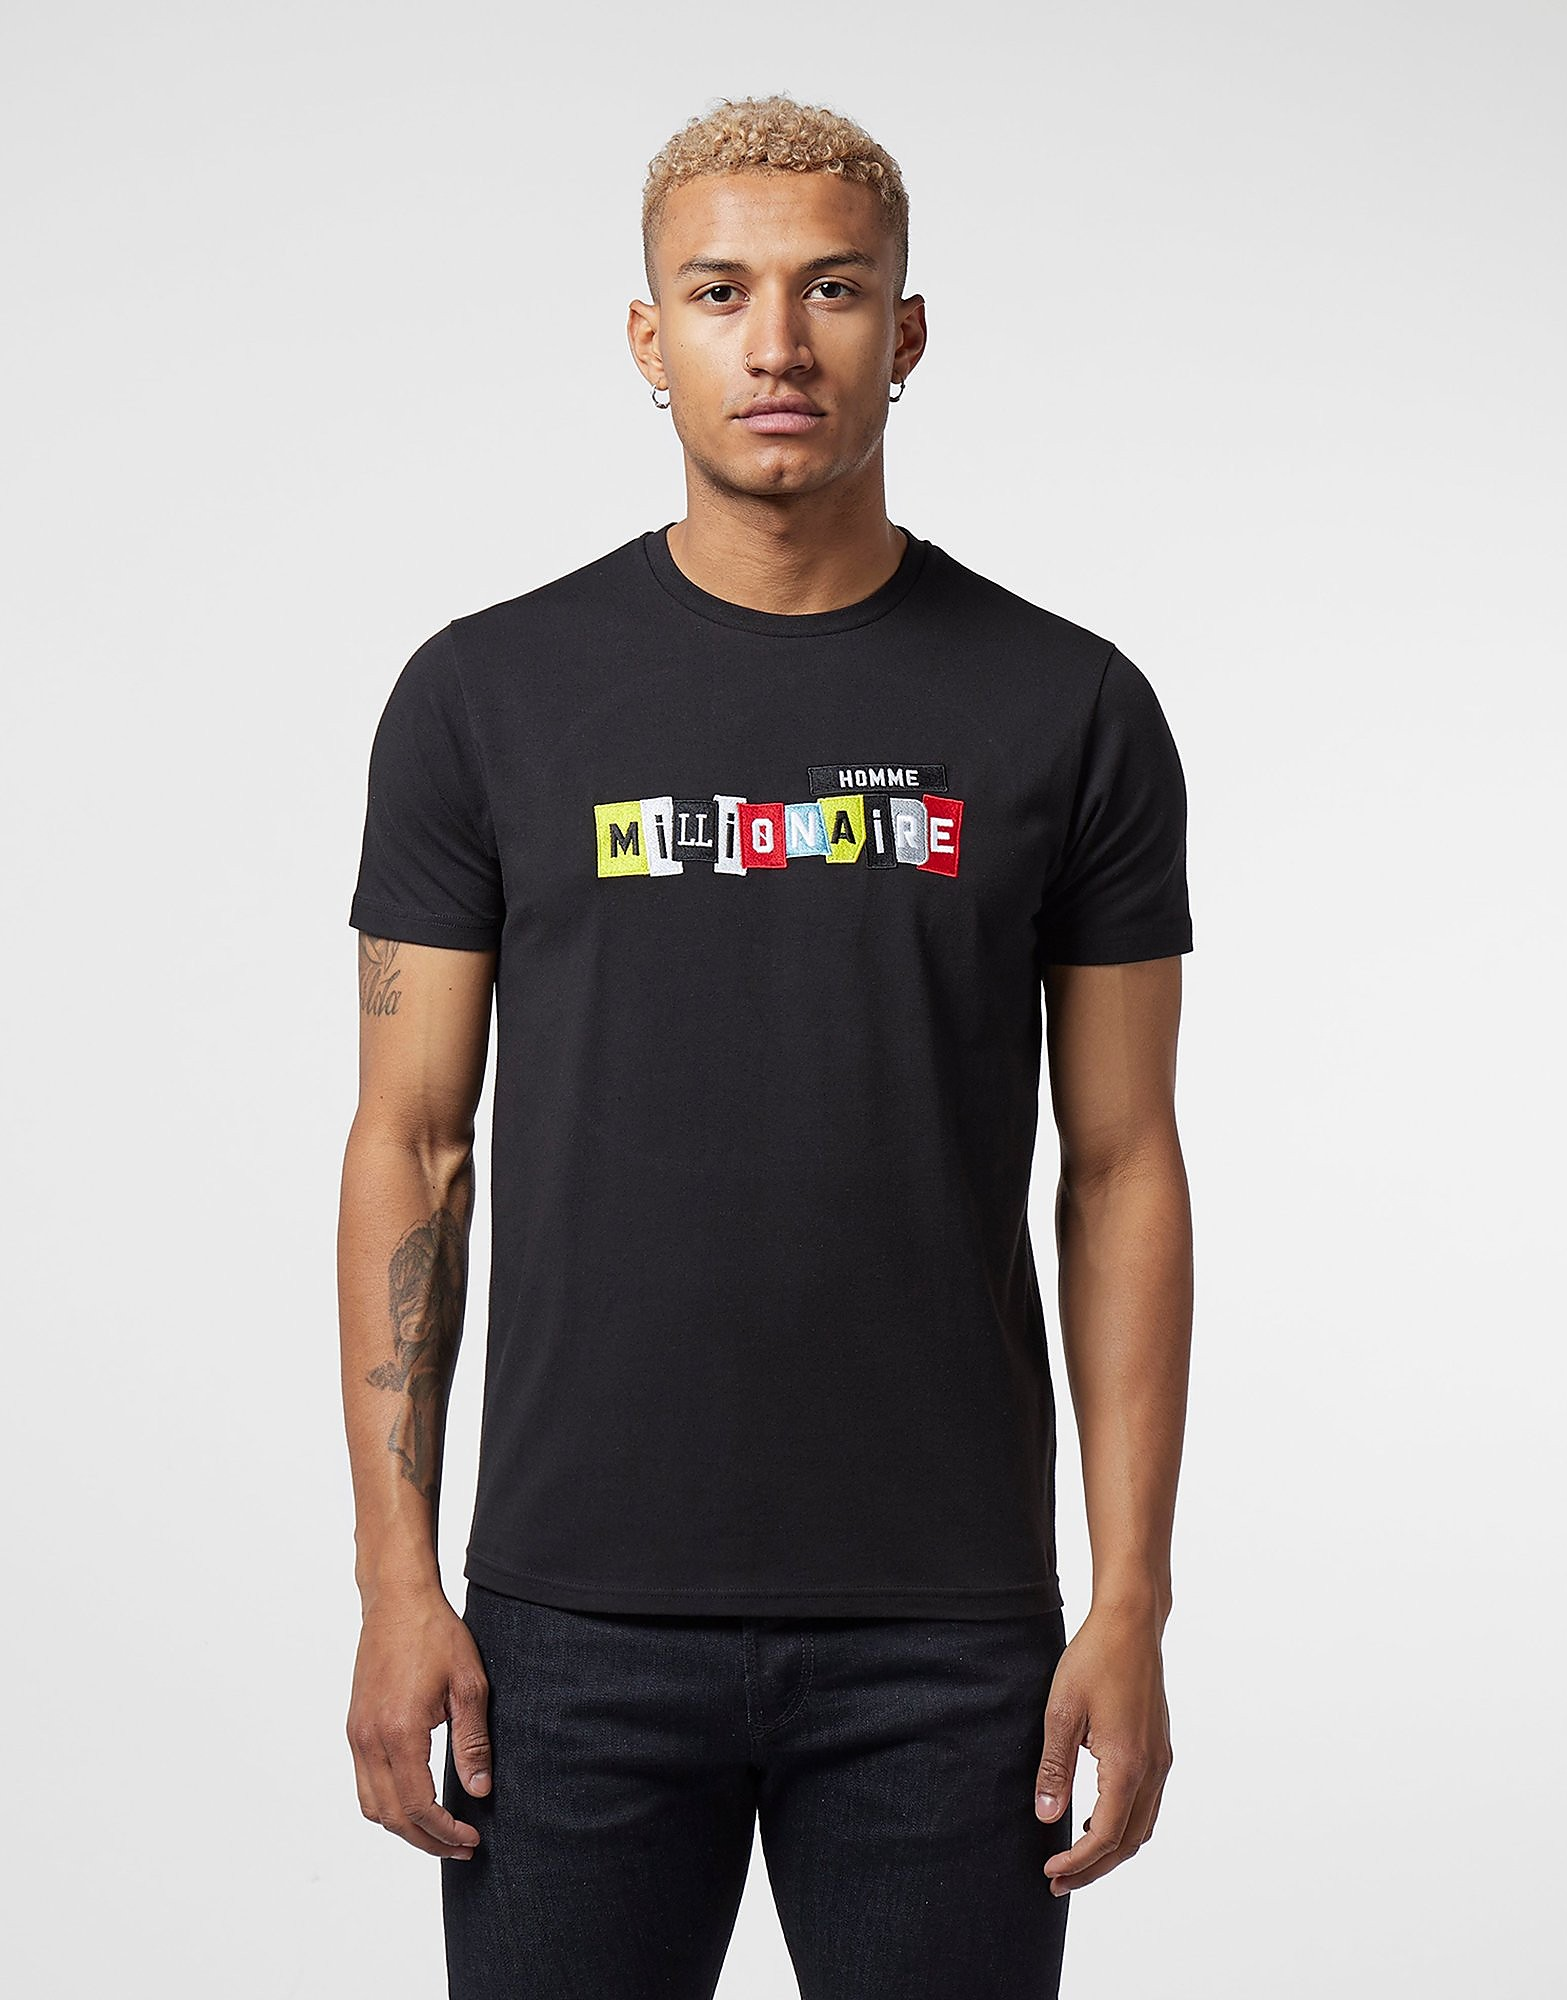 Millionaire Homme Patch Logo Short Sleeve T-Shirt - Online Exclusive